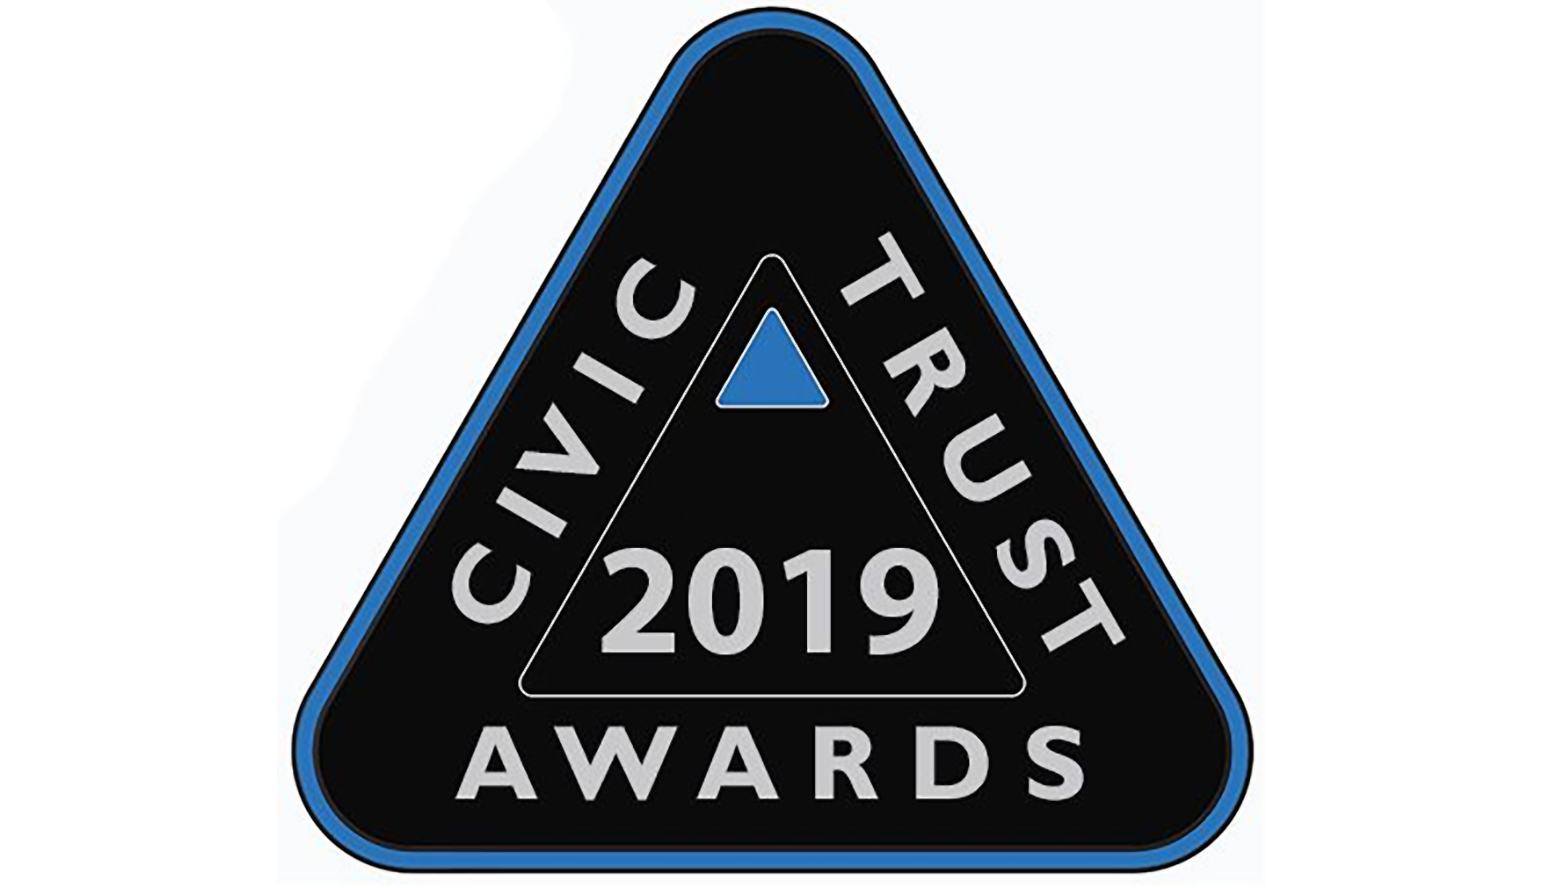 Civic Trust Awards 2019